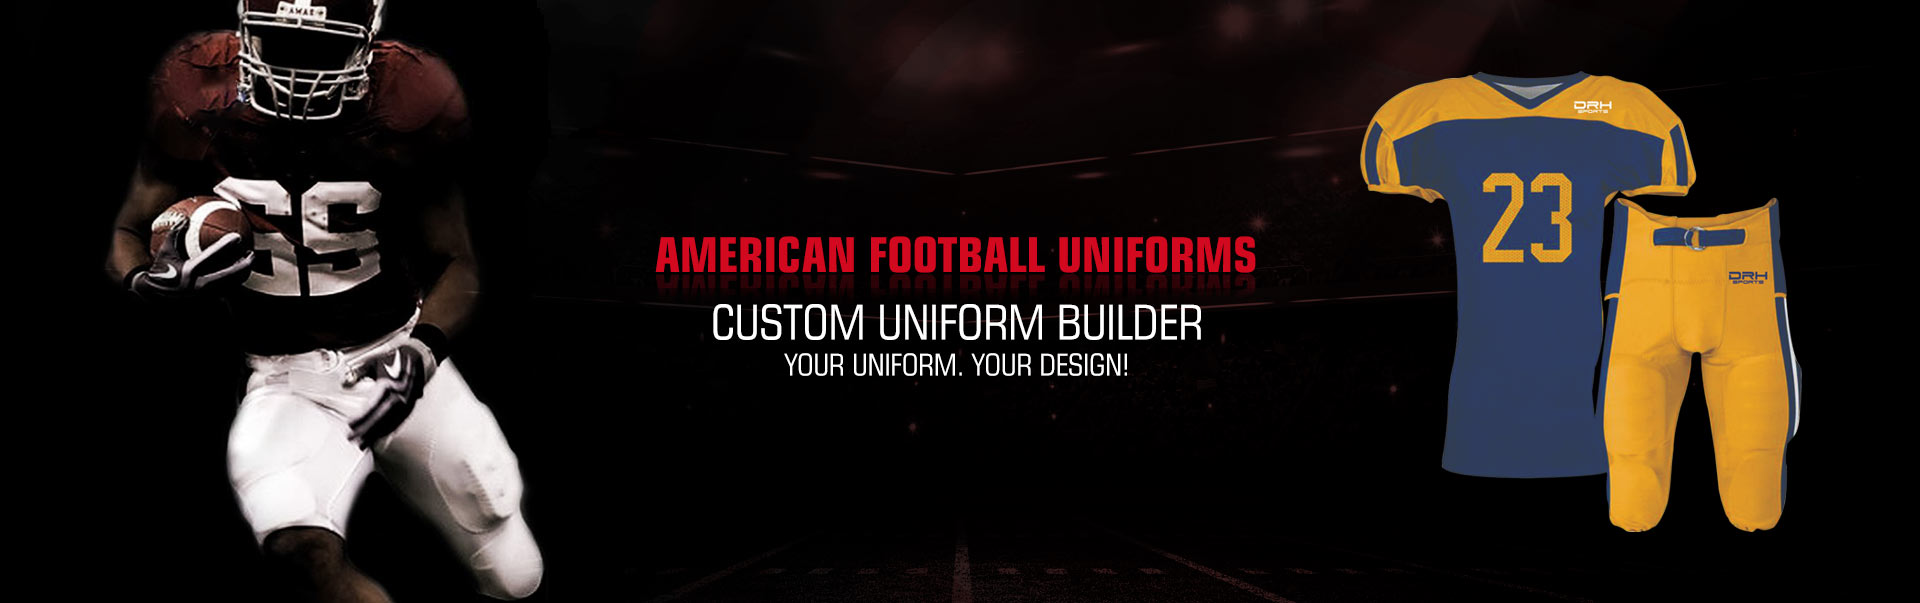 American Football Uniform Wholesaler, Suppliers in Leeds